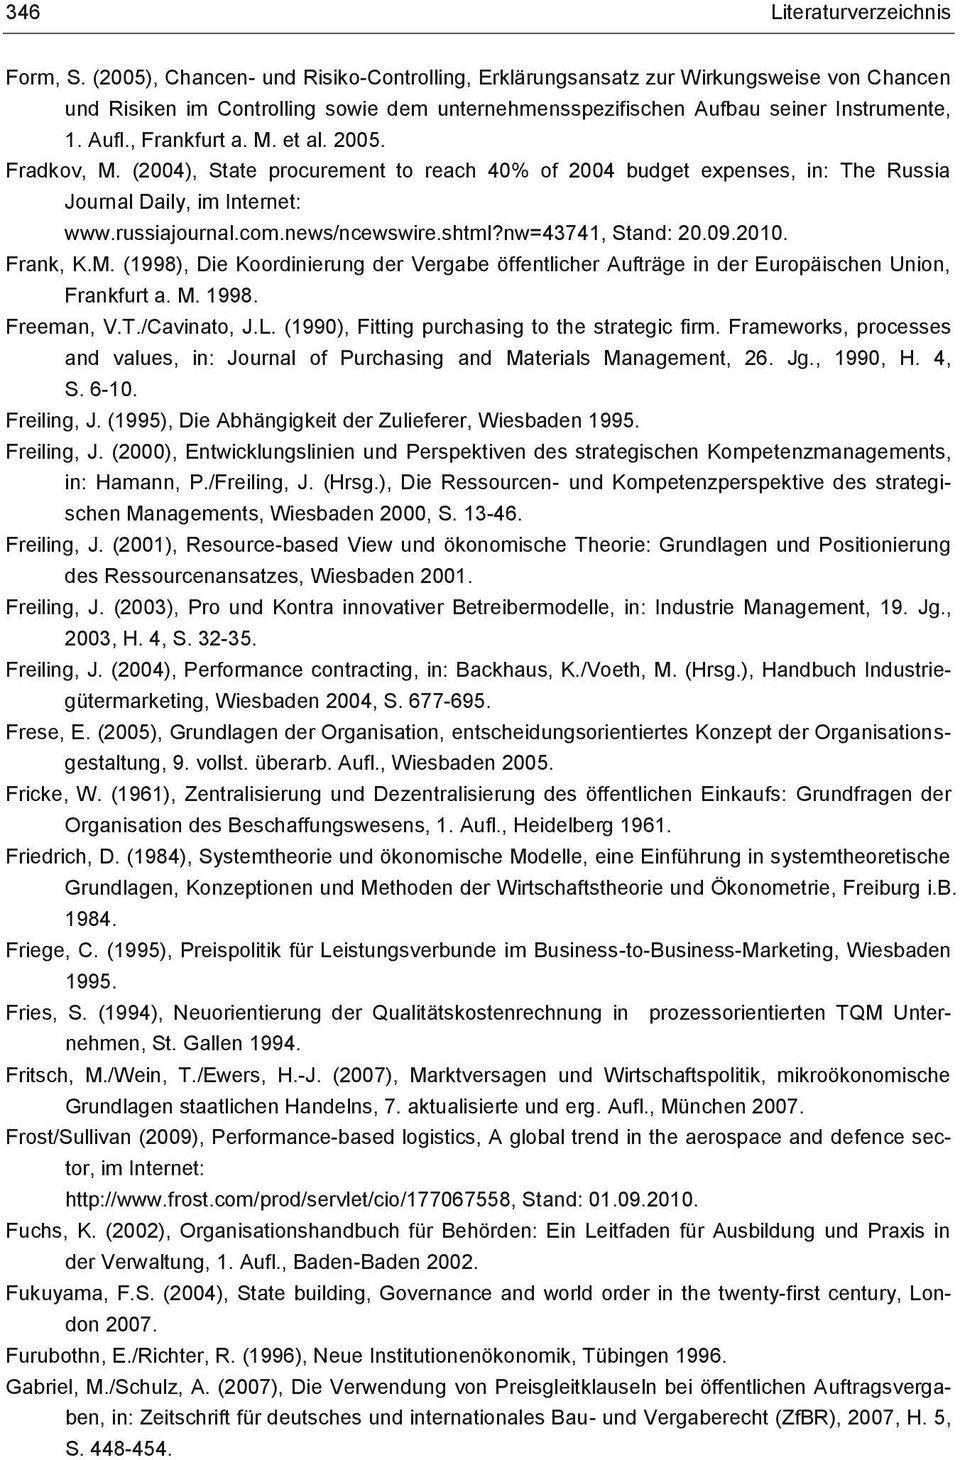 M. et al. 2005. Fradkov, M. (2004), State procurement to reach 40% of 2004 budget expenses, in: The Russia Journal Daily, im Internet: www.russiajournal.com.news/ncewswire.shtml?nw=43741, Stand: 20.